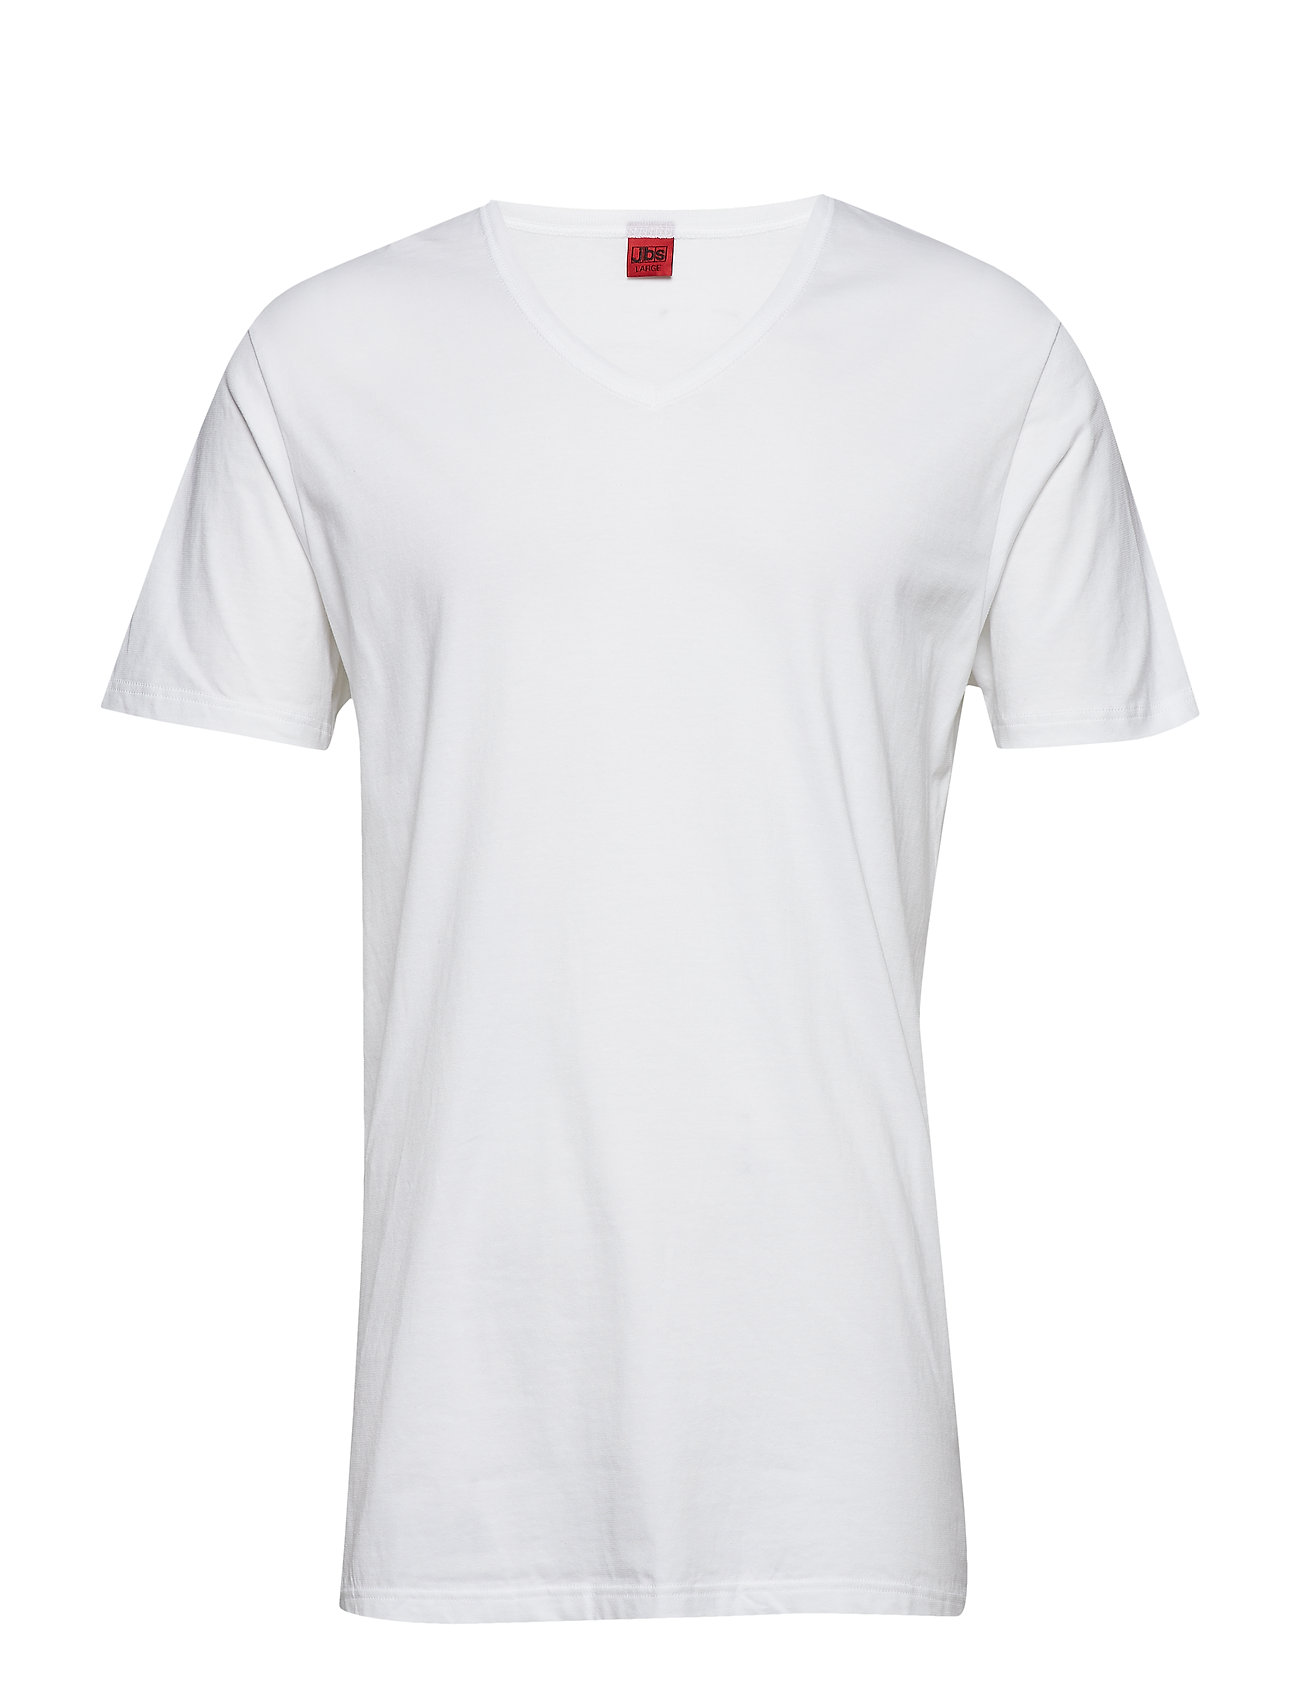 JBS Basic v-neck tee - WHITE